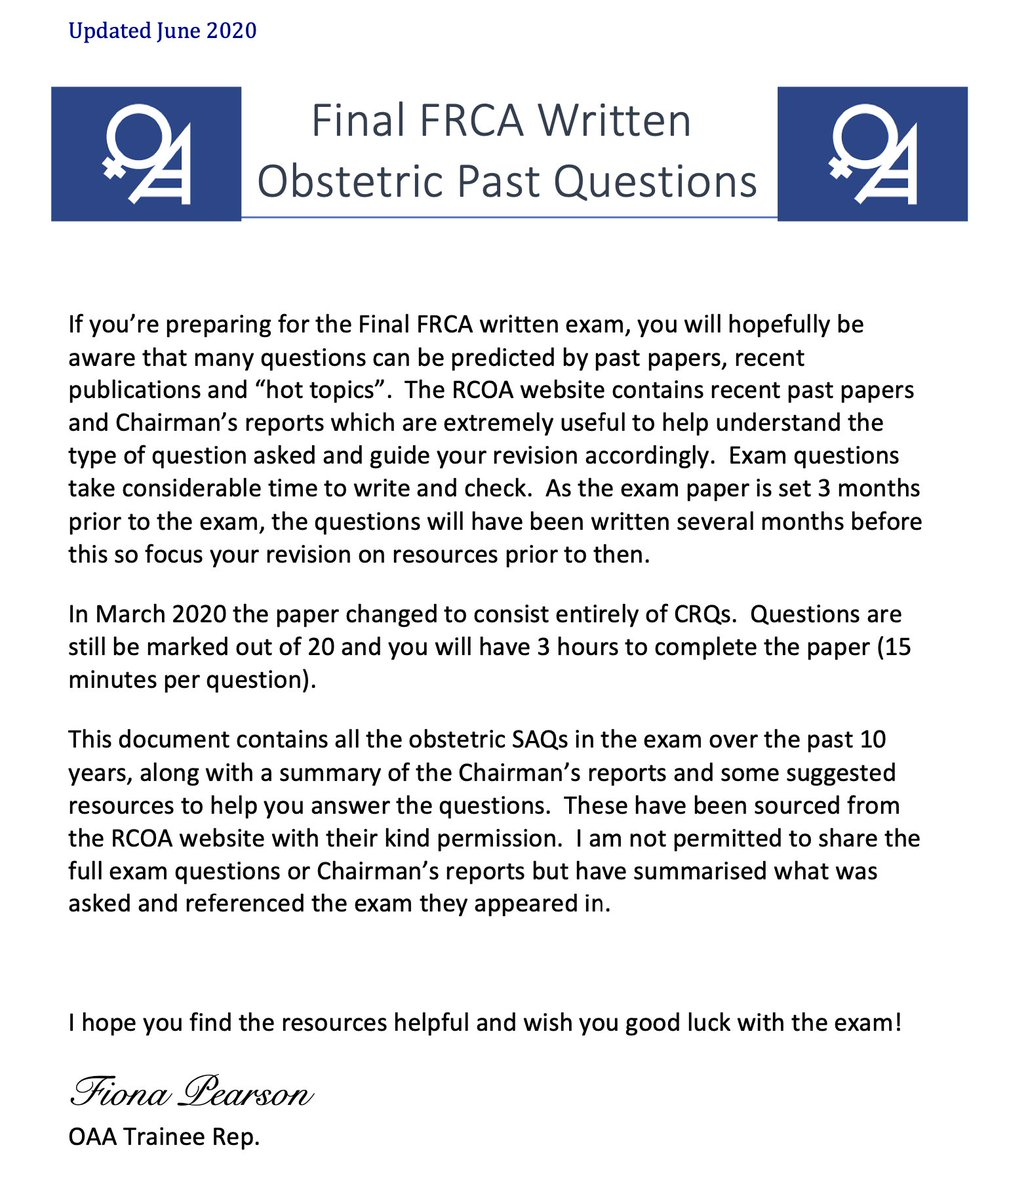 General anaesthesia for LSCS was the obs anaesthesia topic in March's @RCoANews Final FRCA CRQ. If you're studying for the Final CRQ in September, please check out the @OAAinfo exam resource here:  https://t.co/HsB4N6bNLr https://t.co/XEj88NmBkt